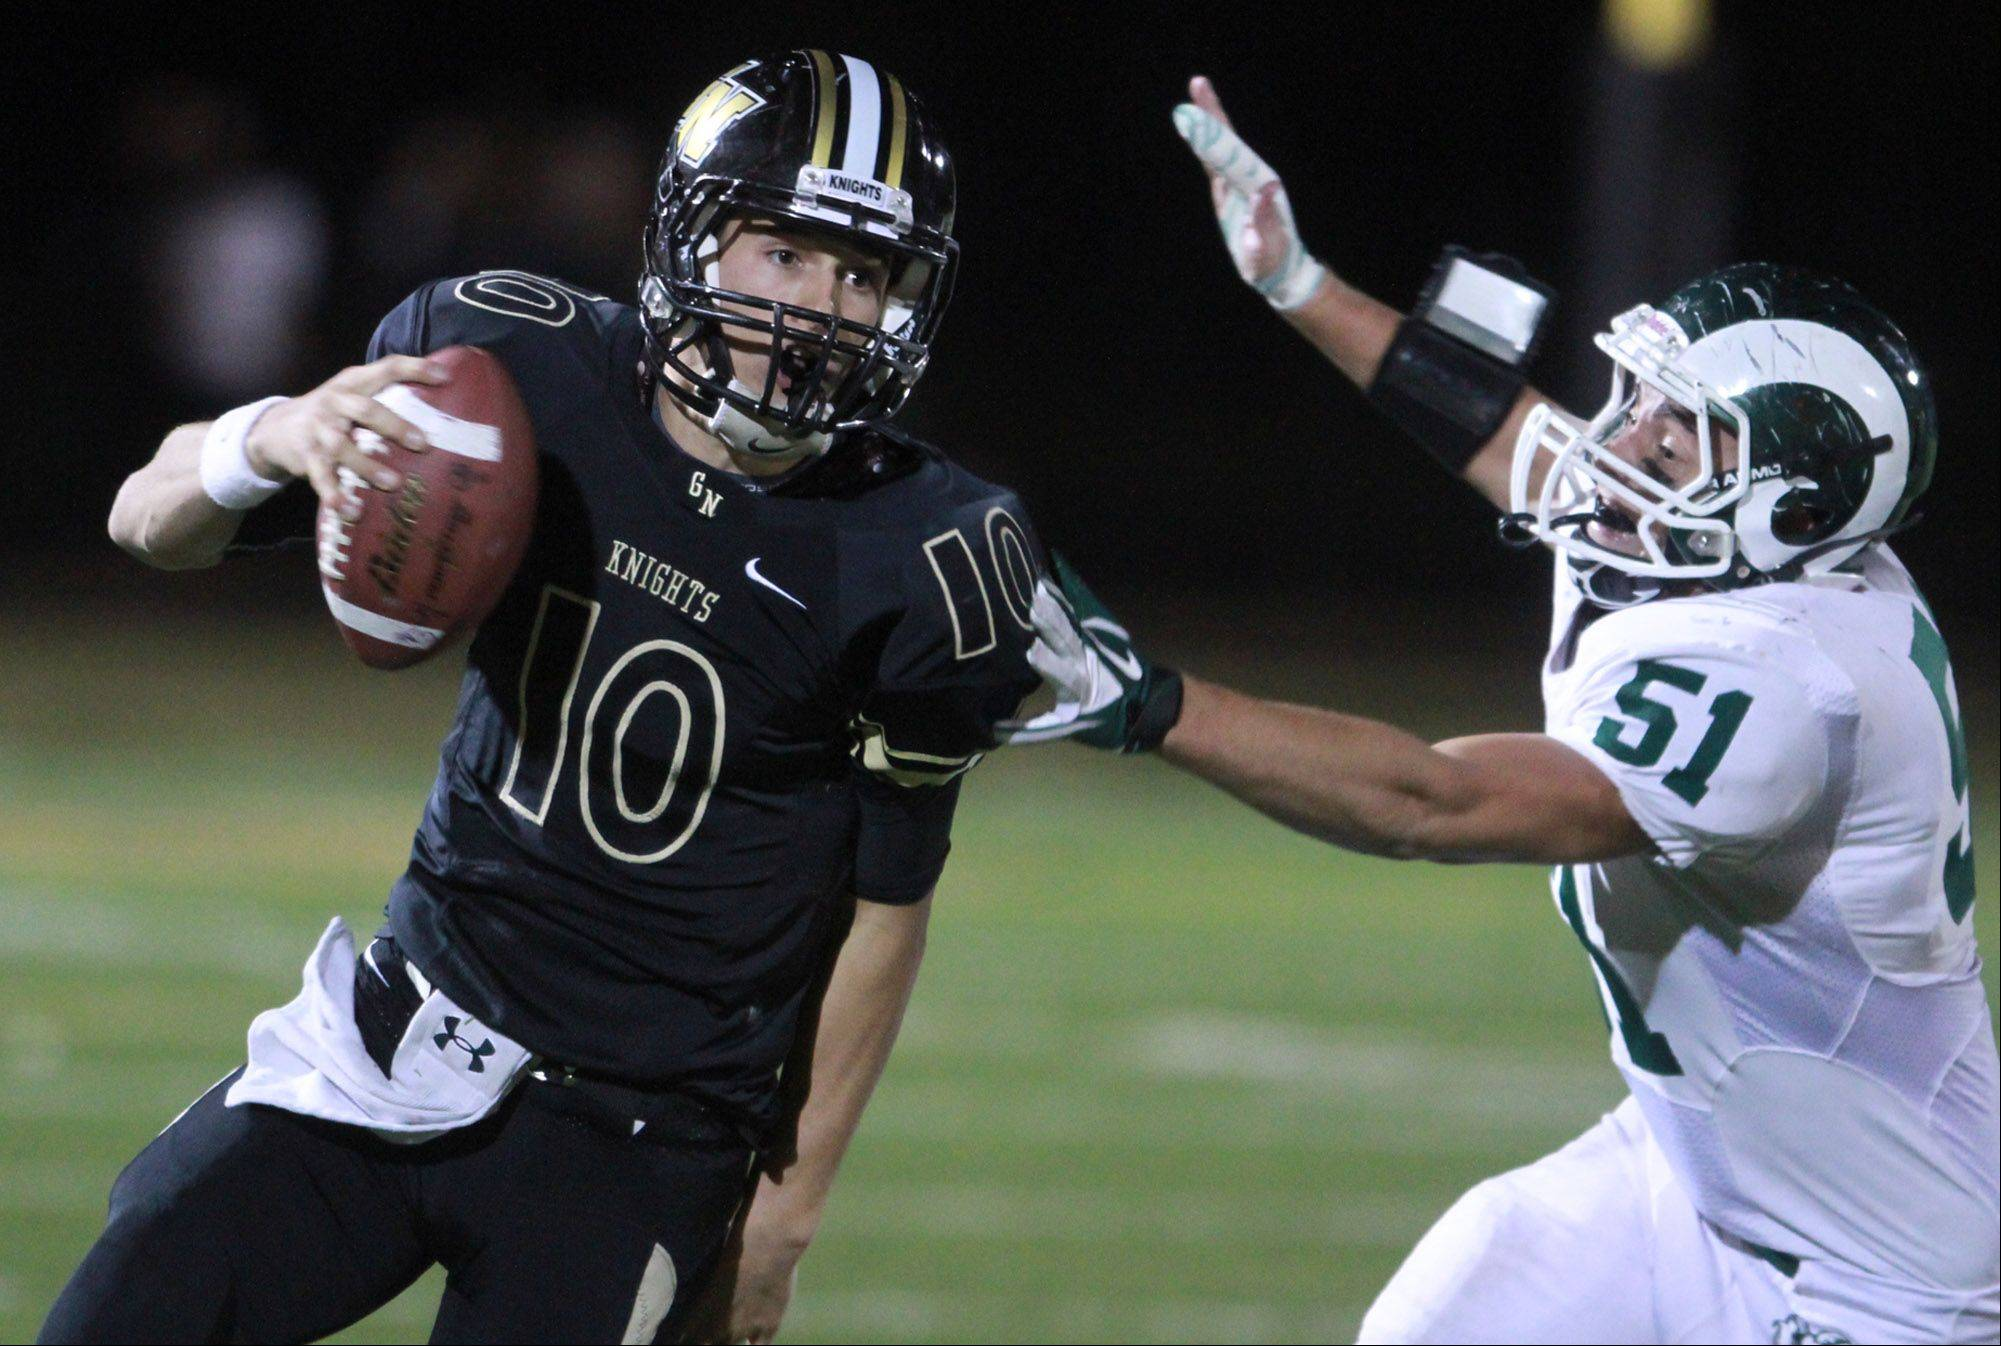 Grayslake North quarterback Anthony Fish slips past Grayslake Central defender Alex McCully.